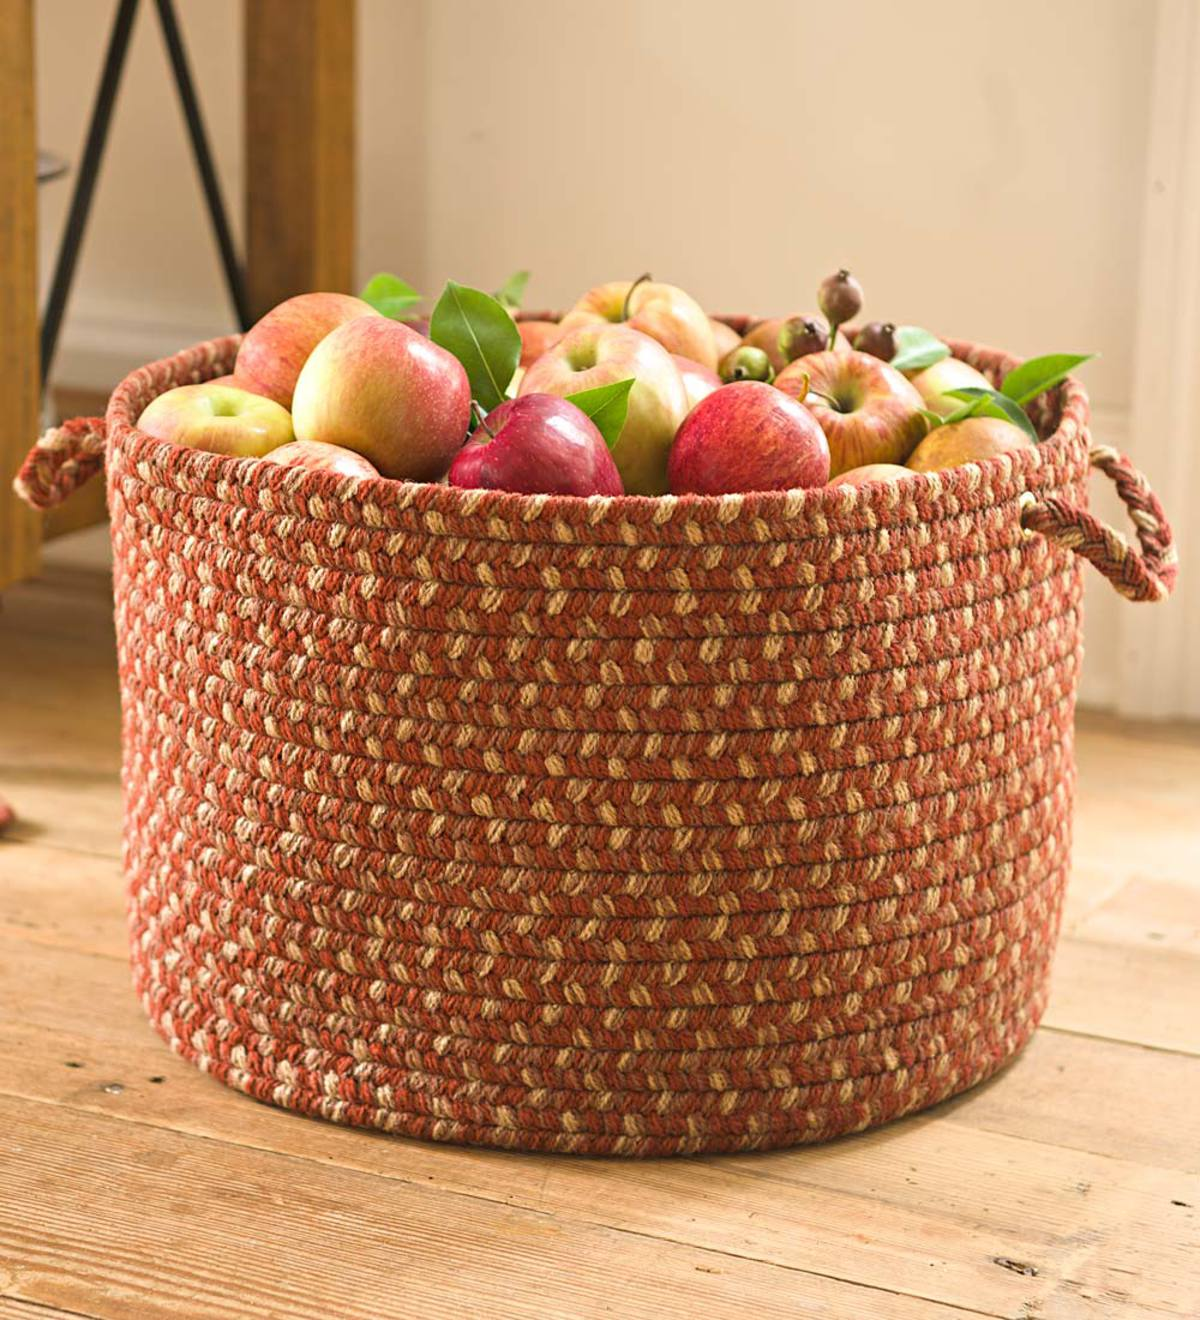 Braided Polypro Roanoke Basket with Handles